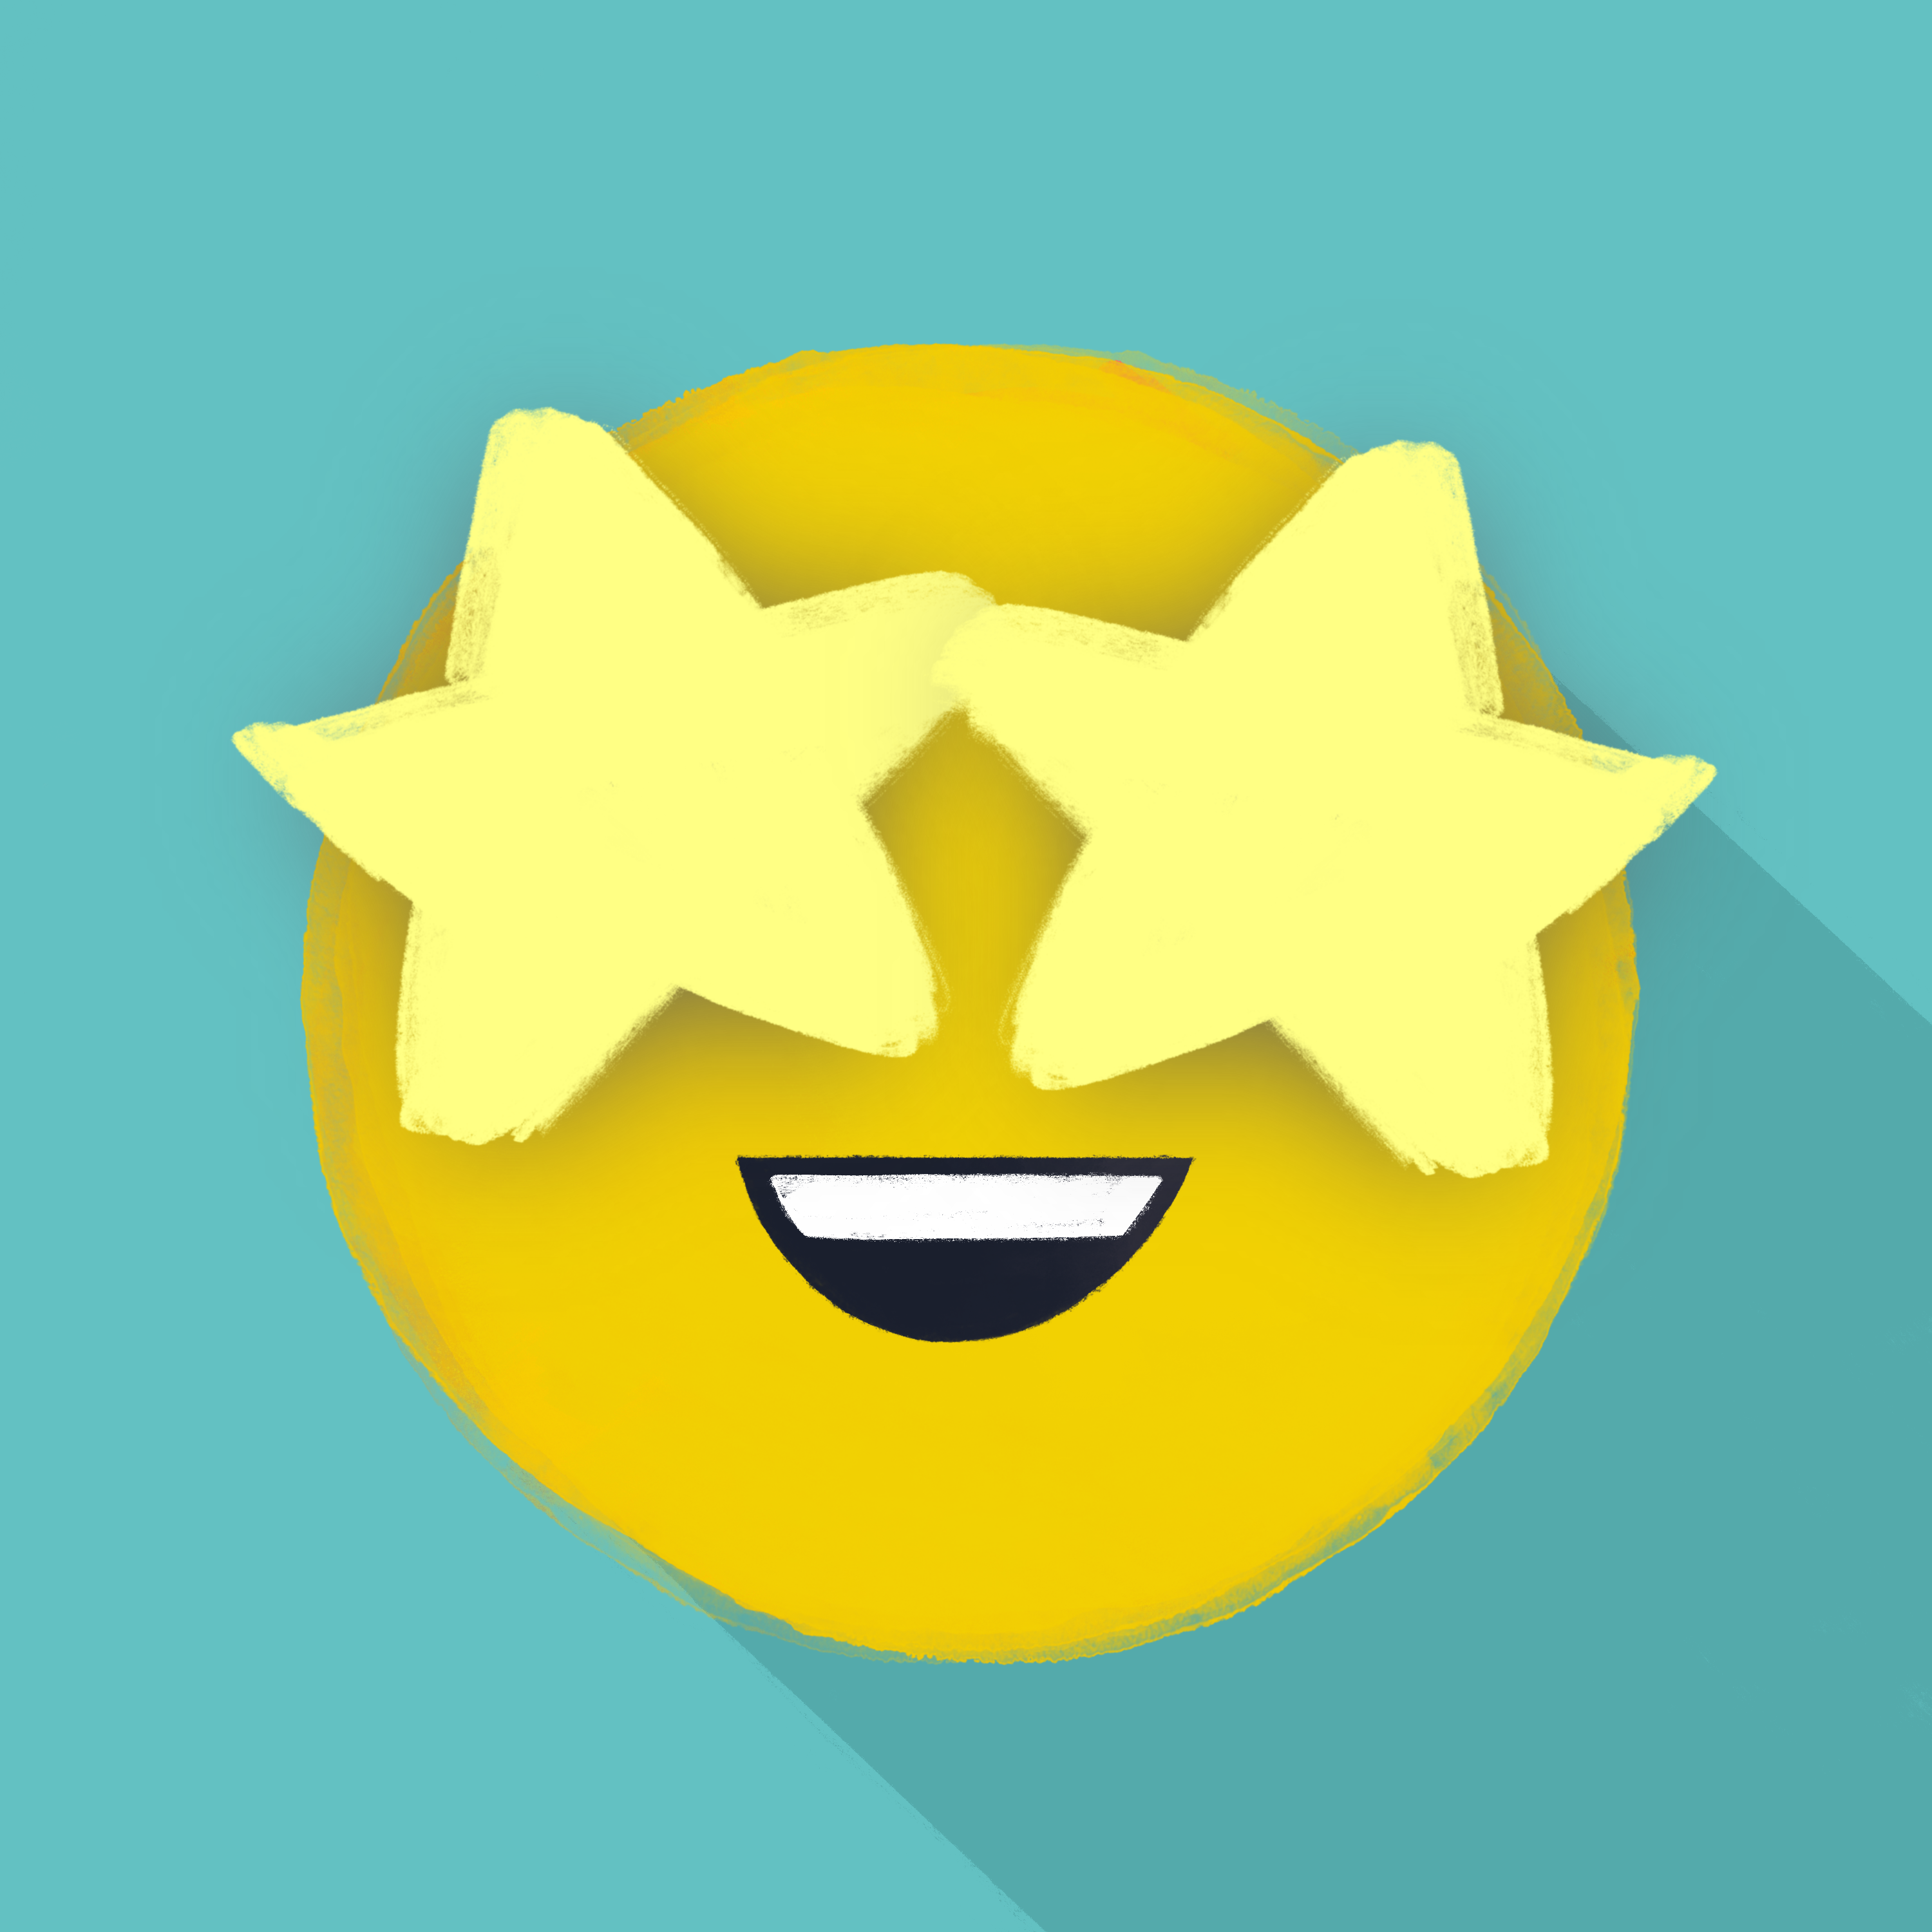 9-Emoji-Reimagined-Grinning_Face_With_Star_Eyes-Kiwani-Dolean